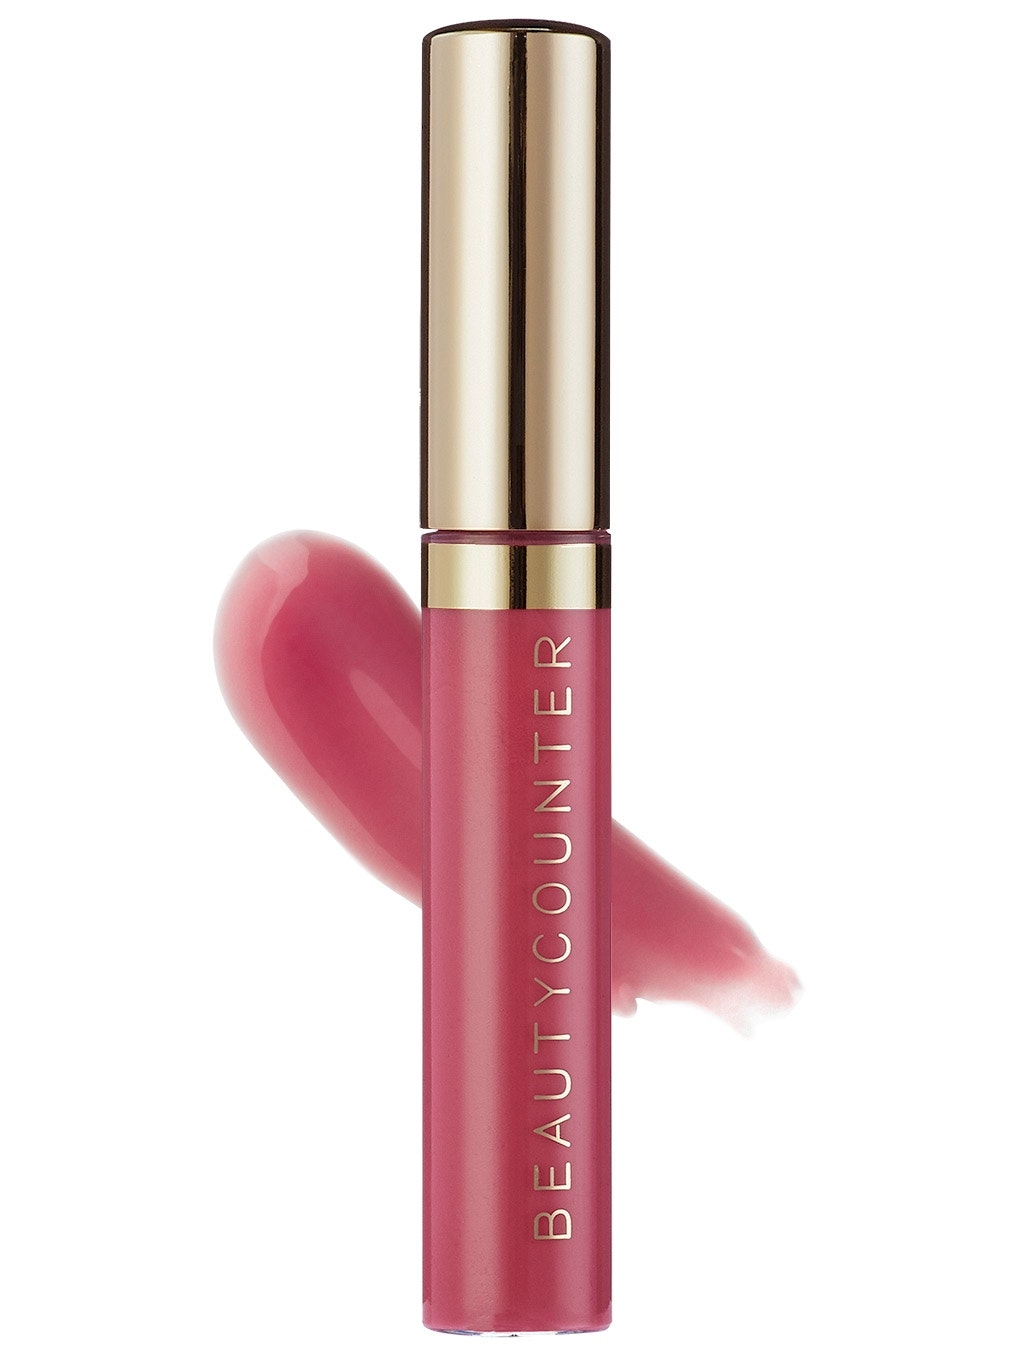 Lip Gloss in Dahlia